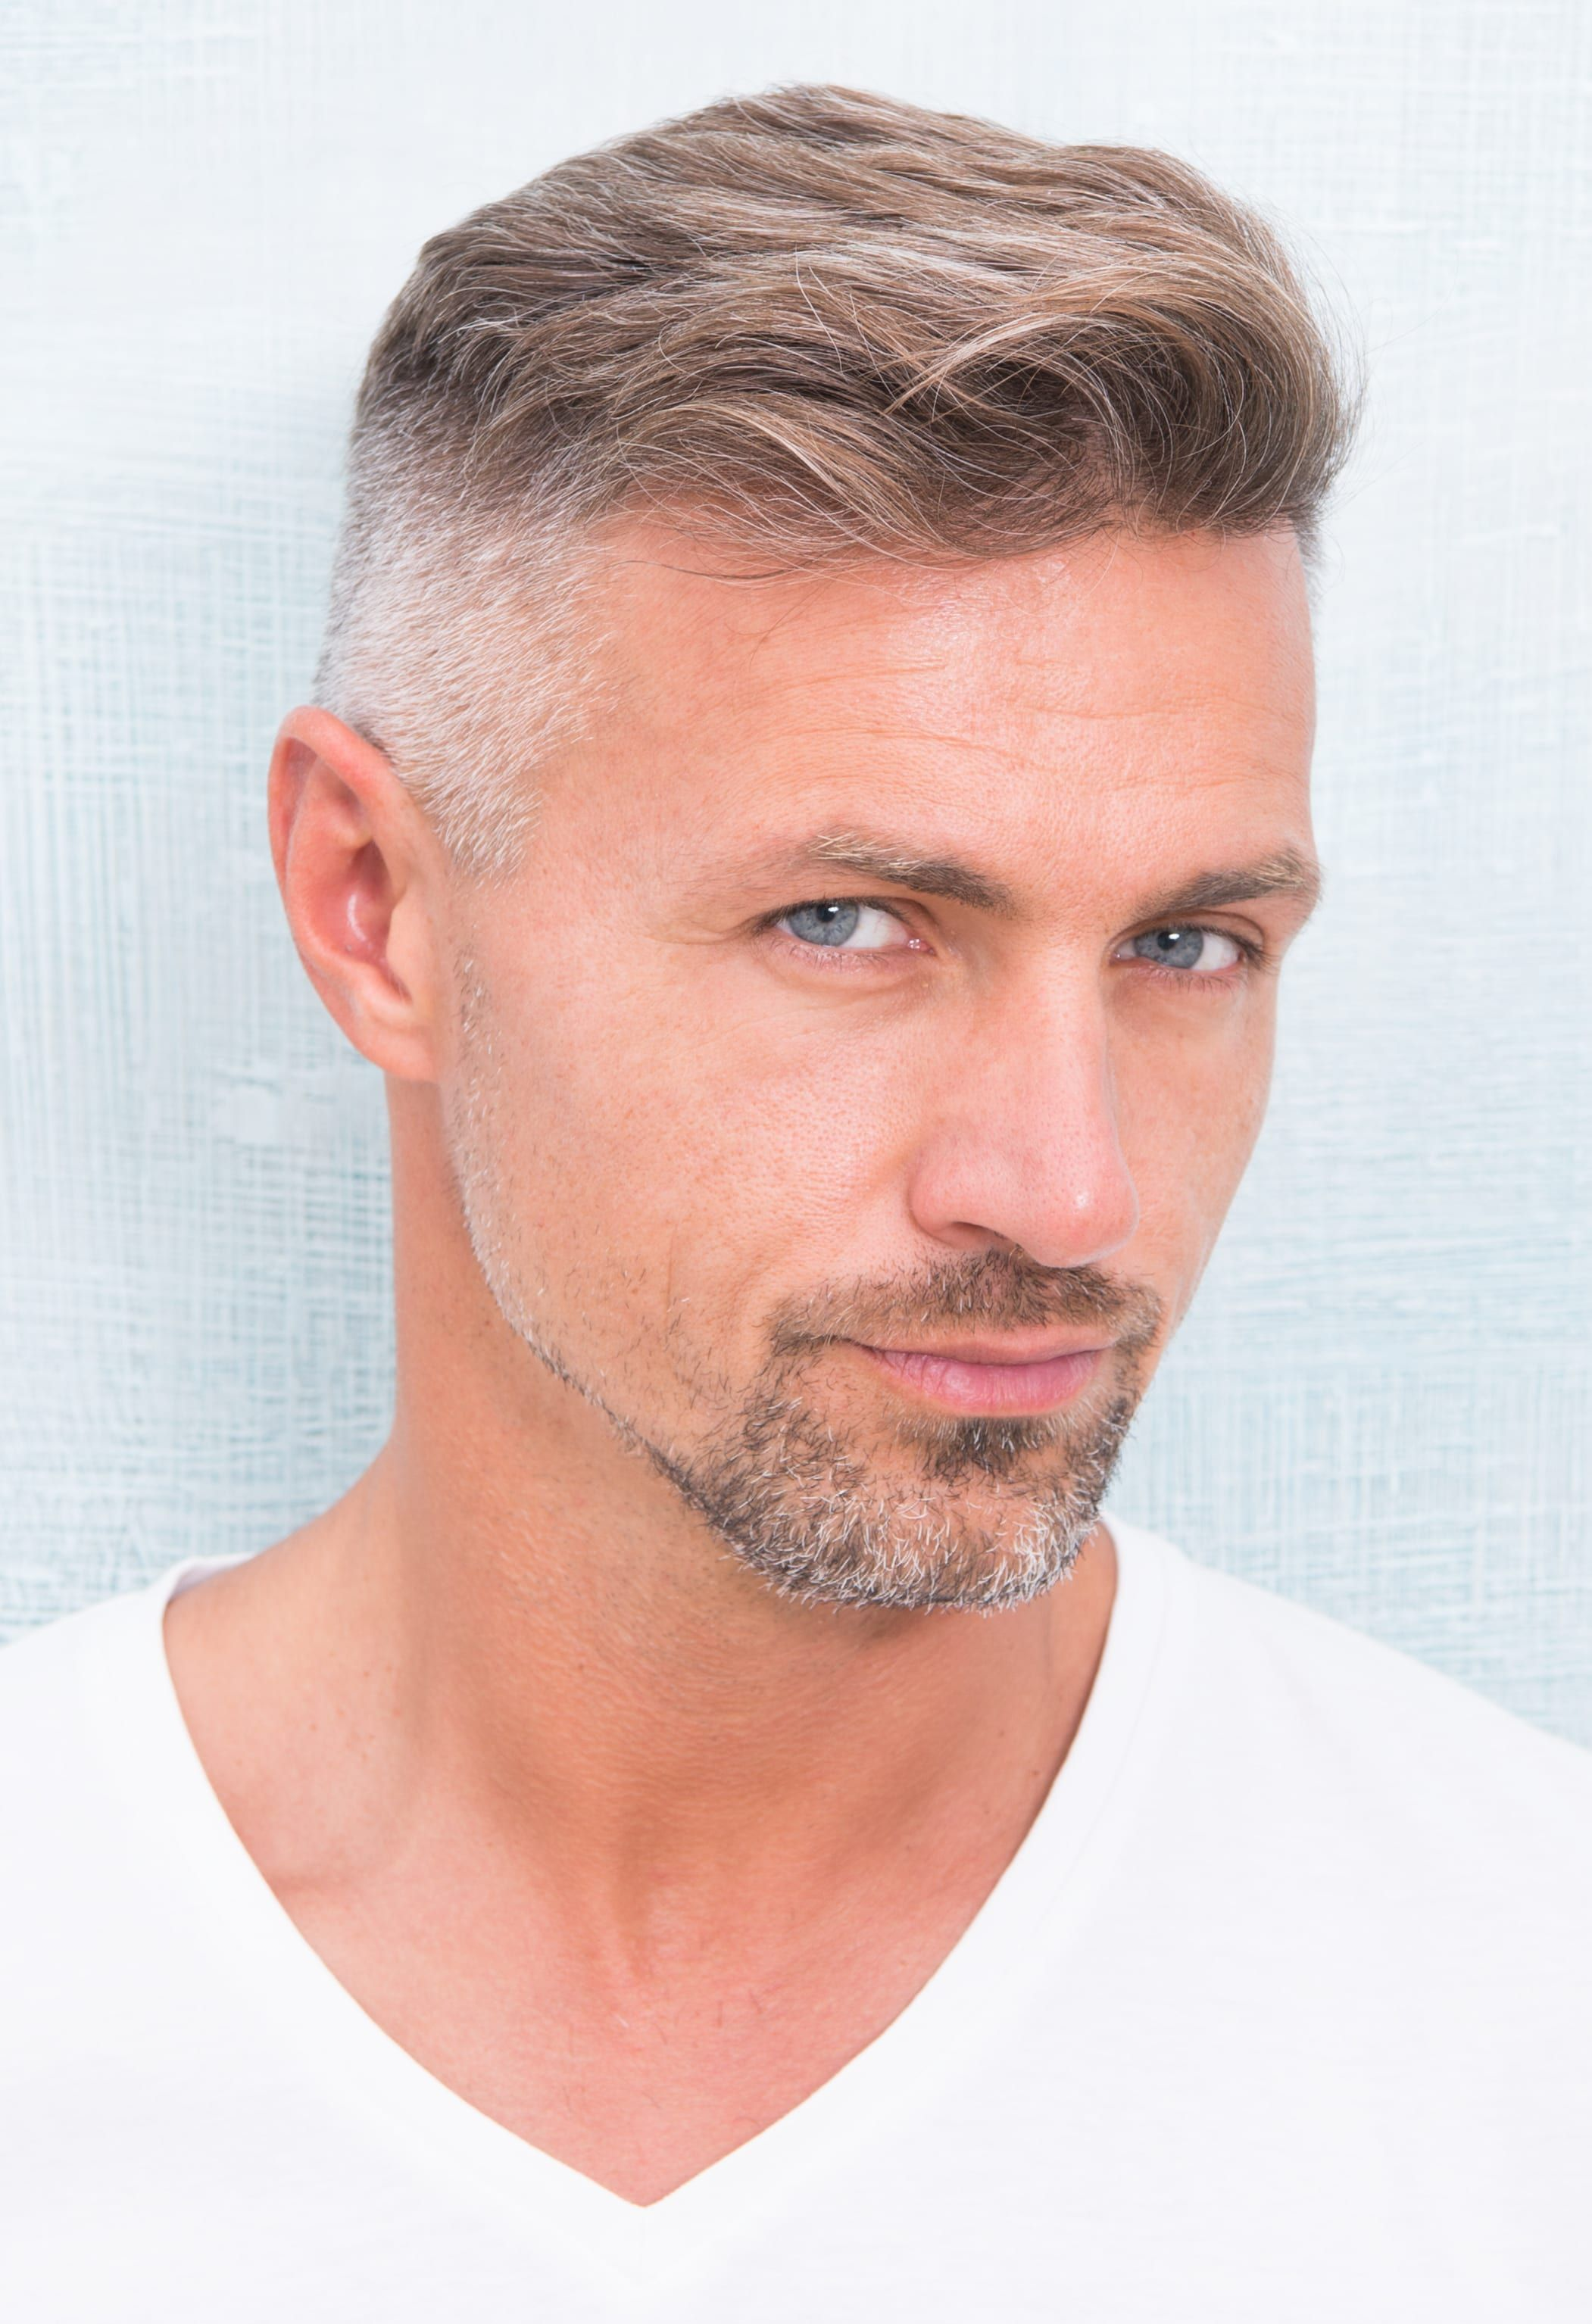 15 Glorious Hairstyles For Men With Grey Hair A K A Silver Foxes In 2020 Thin Hair Men Grey Hair Men Mens Hairstyles